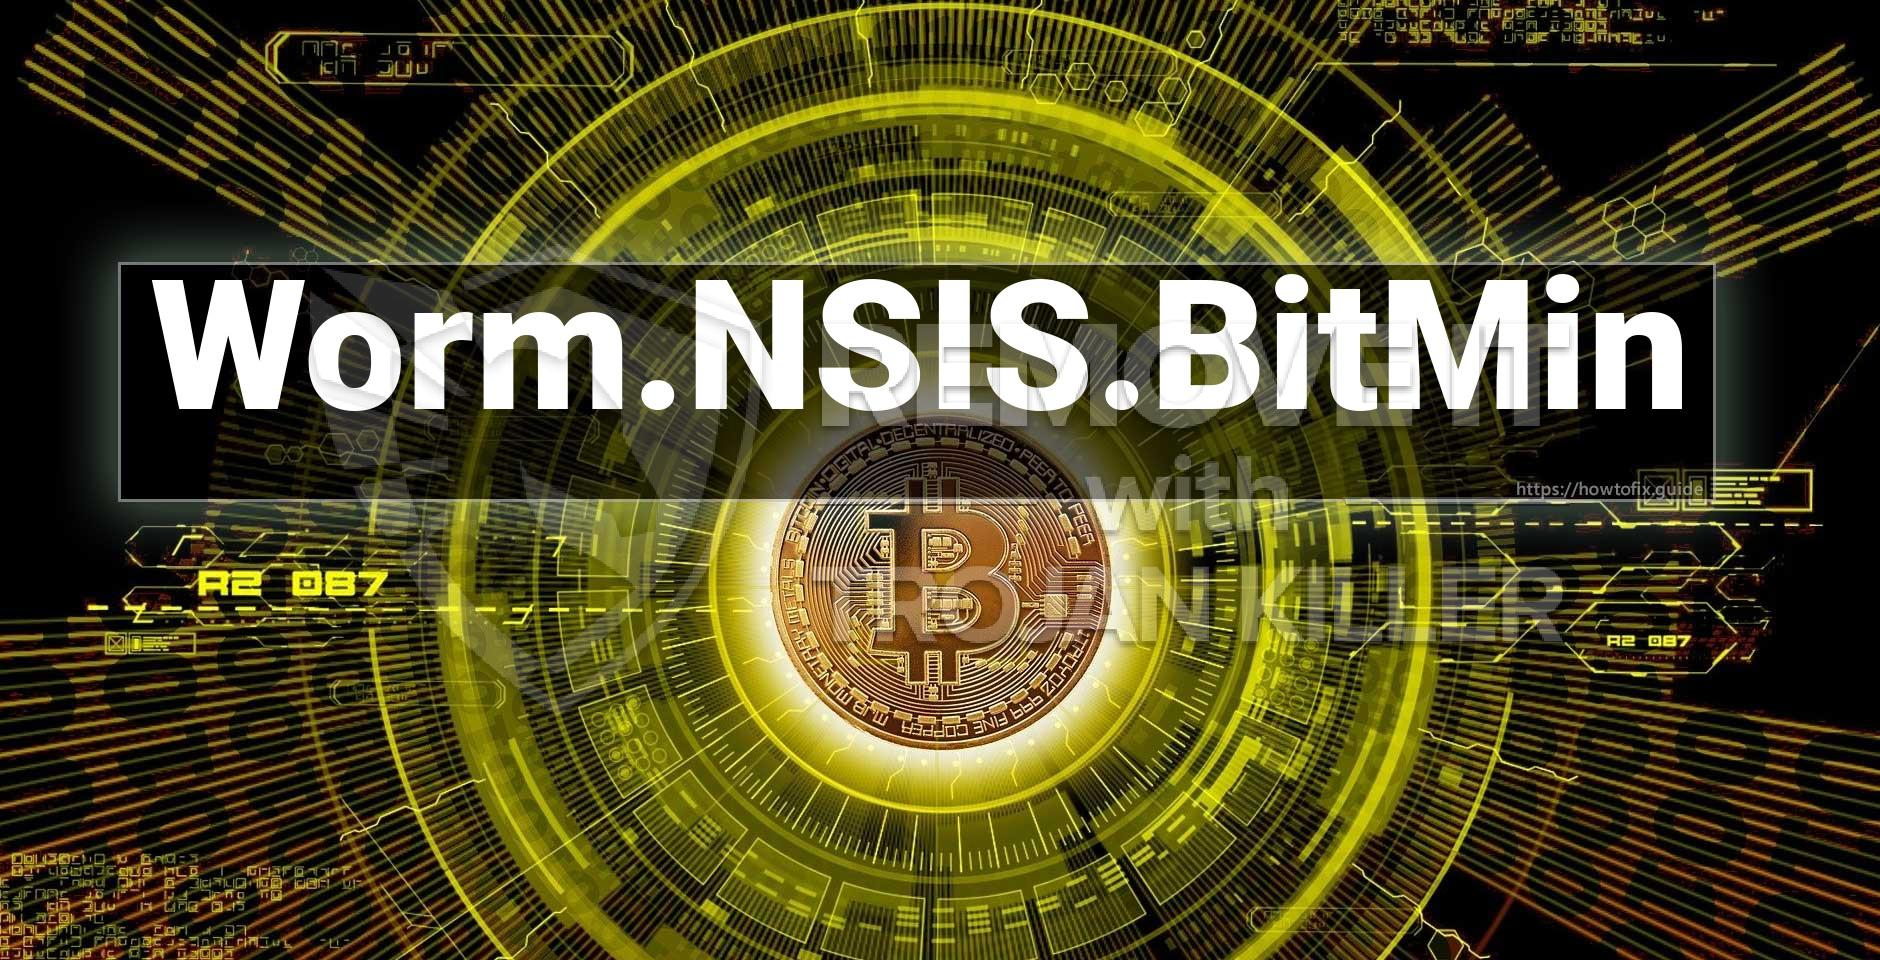 What is Worm.NSIS.BitMi?